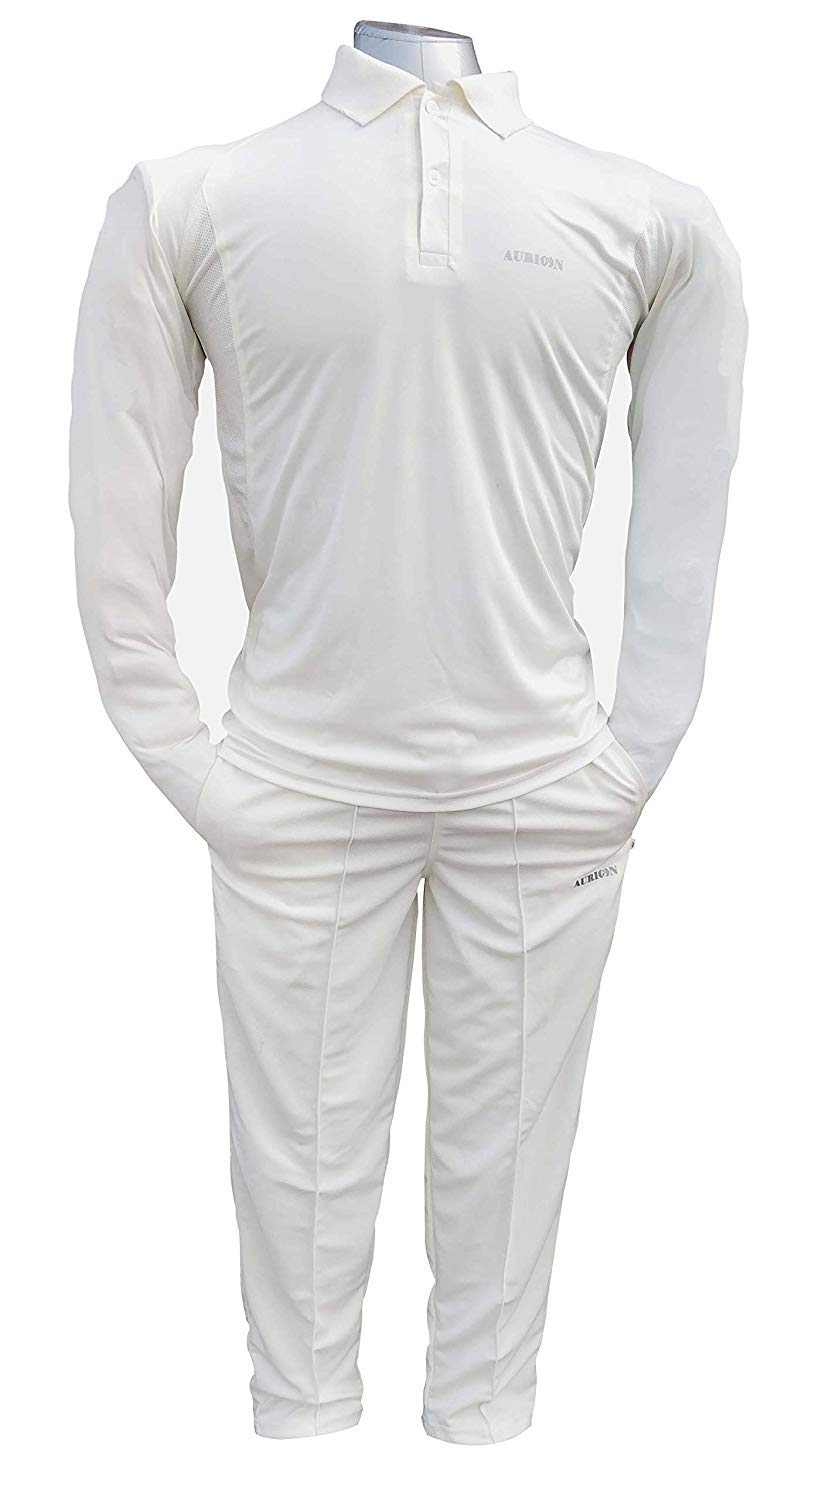 AURION Cricket Off White T-Shirt and Trousers Combo for Men (B07L5WM8KM) Amazon Price History, Amazon Price Tracker